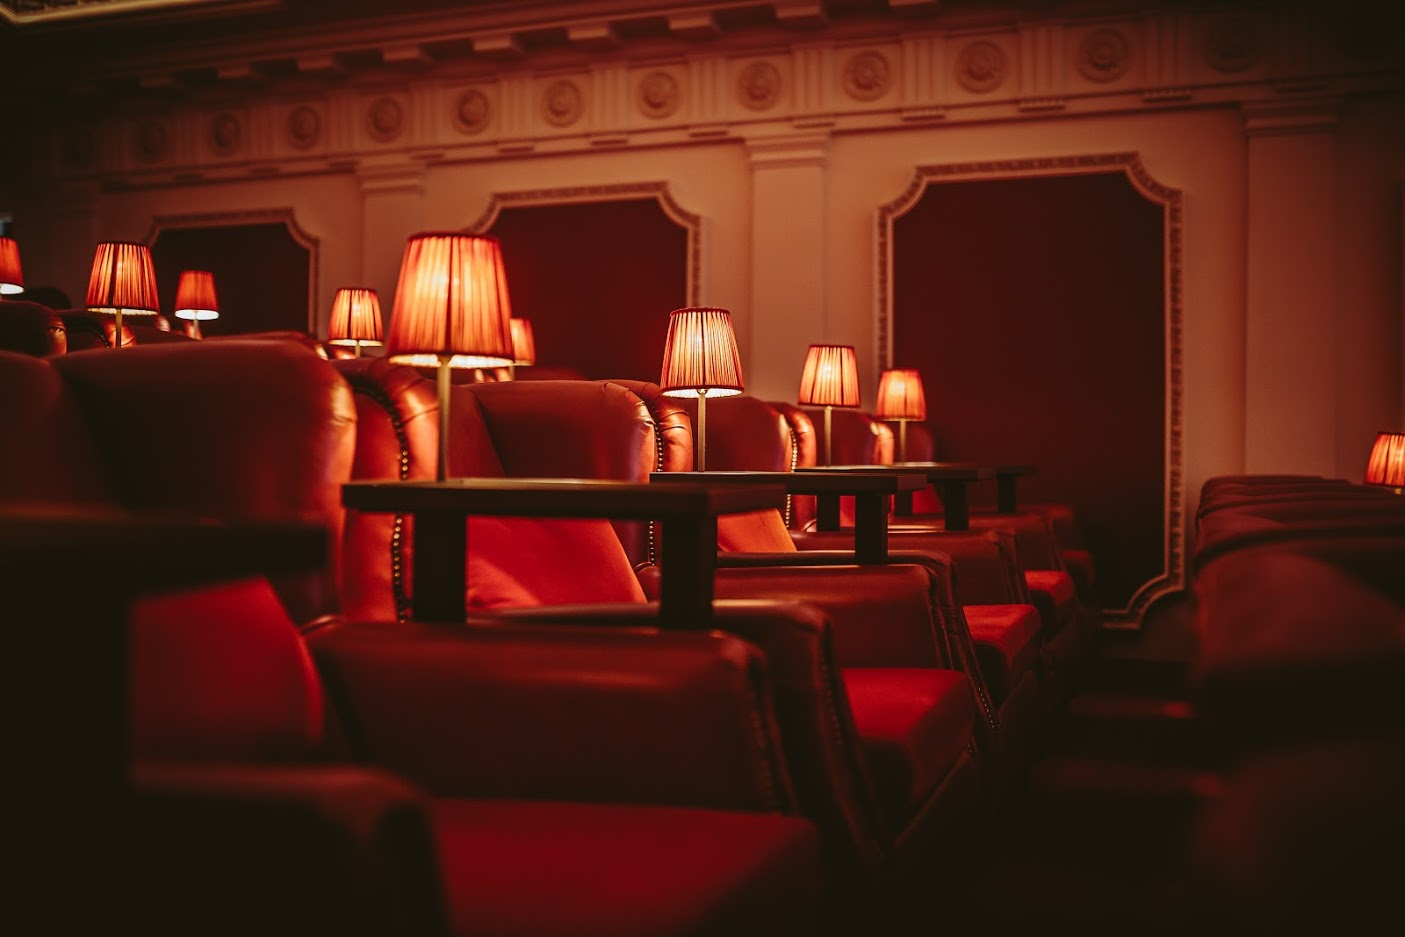 Raising the cinema experience to a new level with The Scotsman Hotel Picturehouse - Read full article here